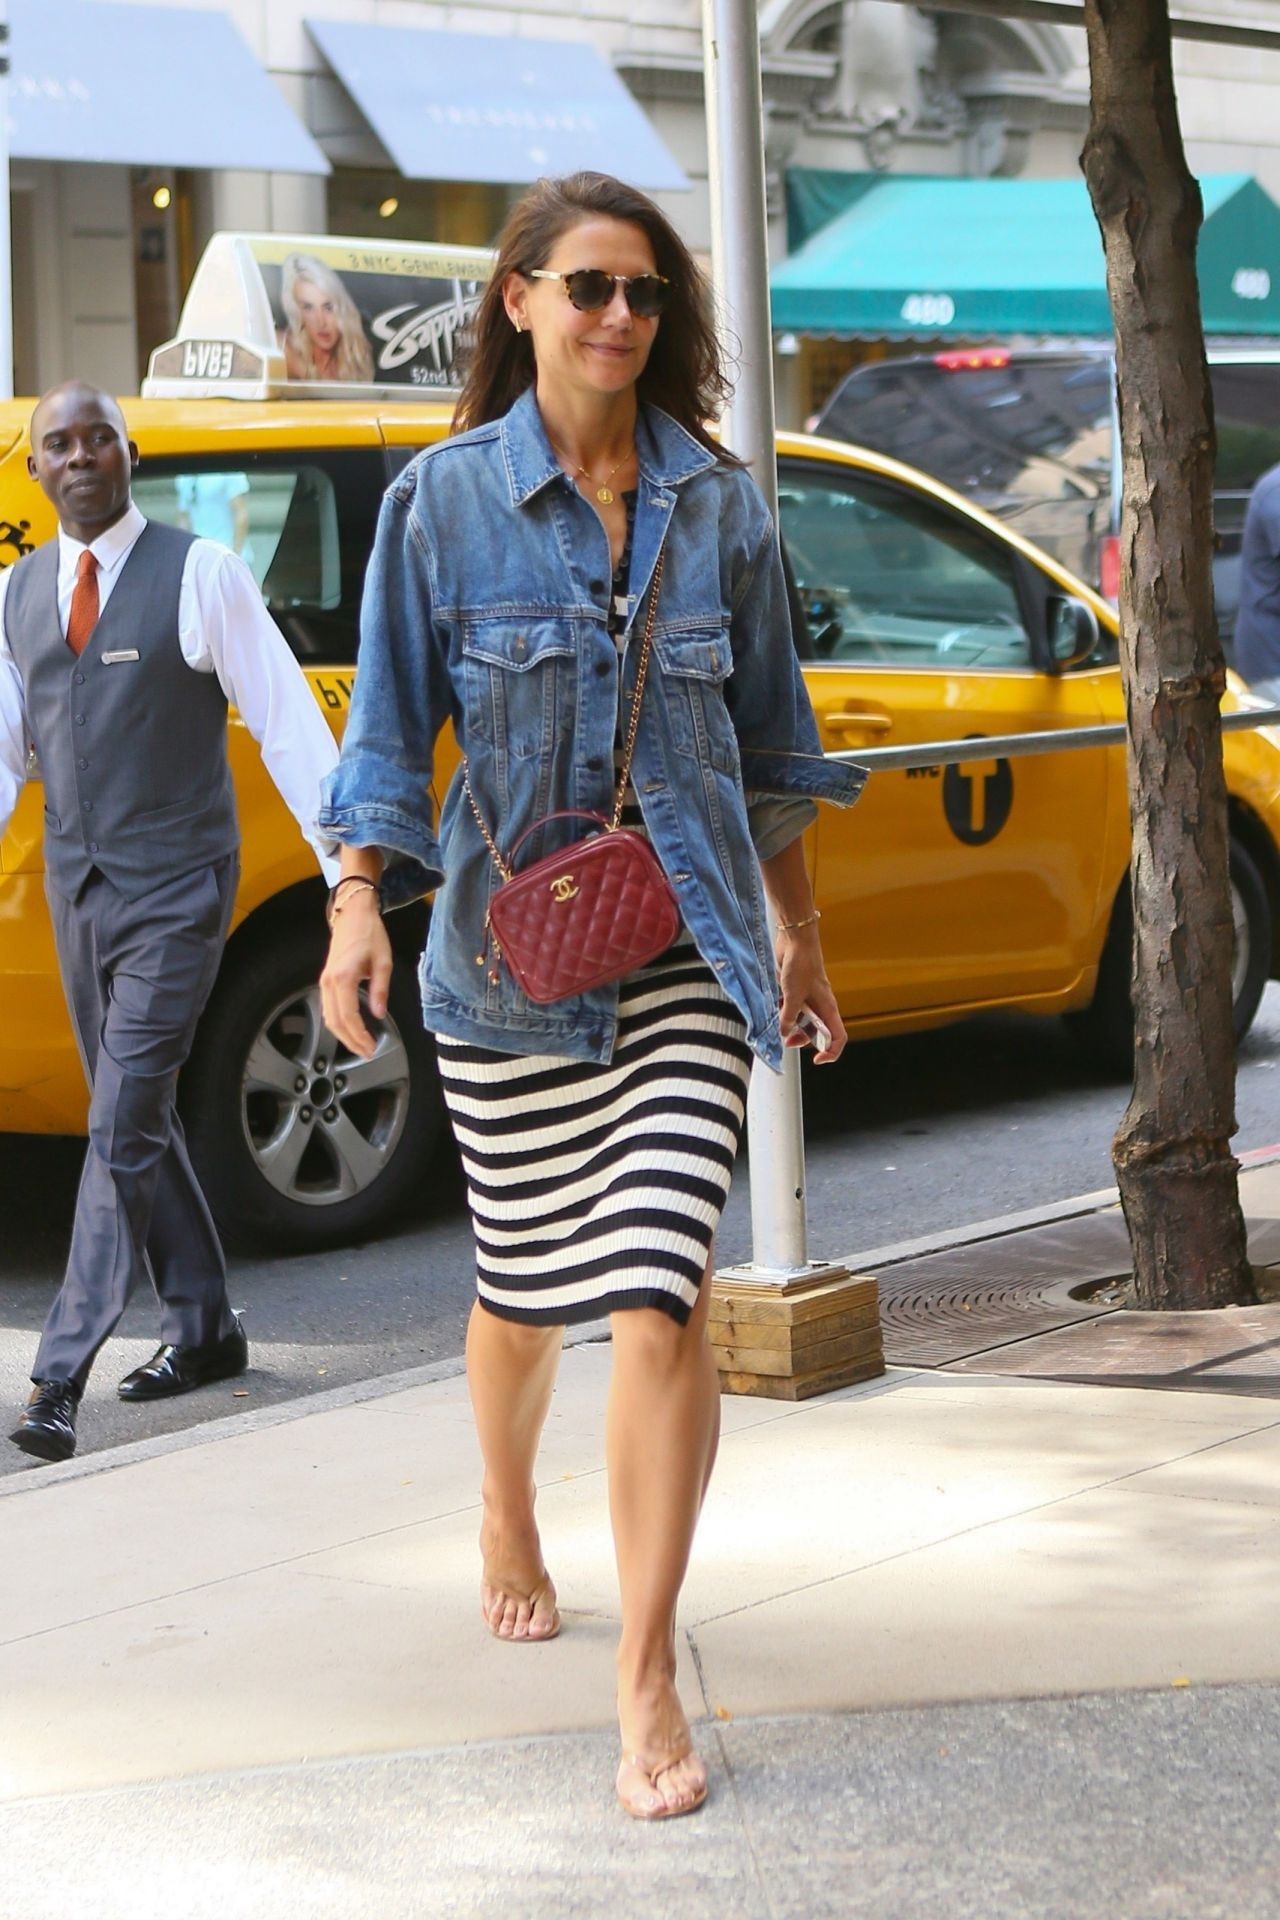 Katie Holmes Out In Nyc 08 18 2019 Celebmafia We tweet to get celeb follows; katie holmes out in nyc 08 18 2019